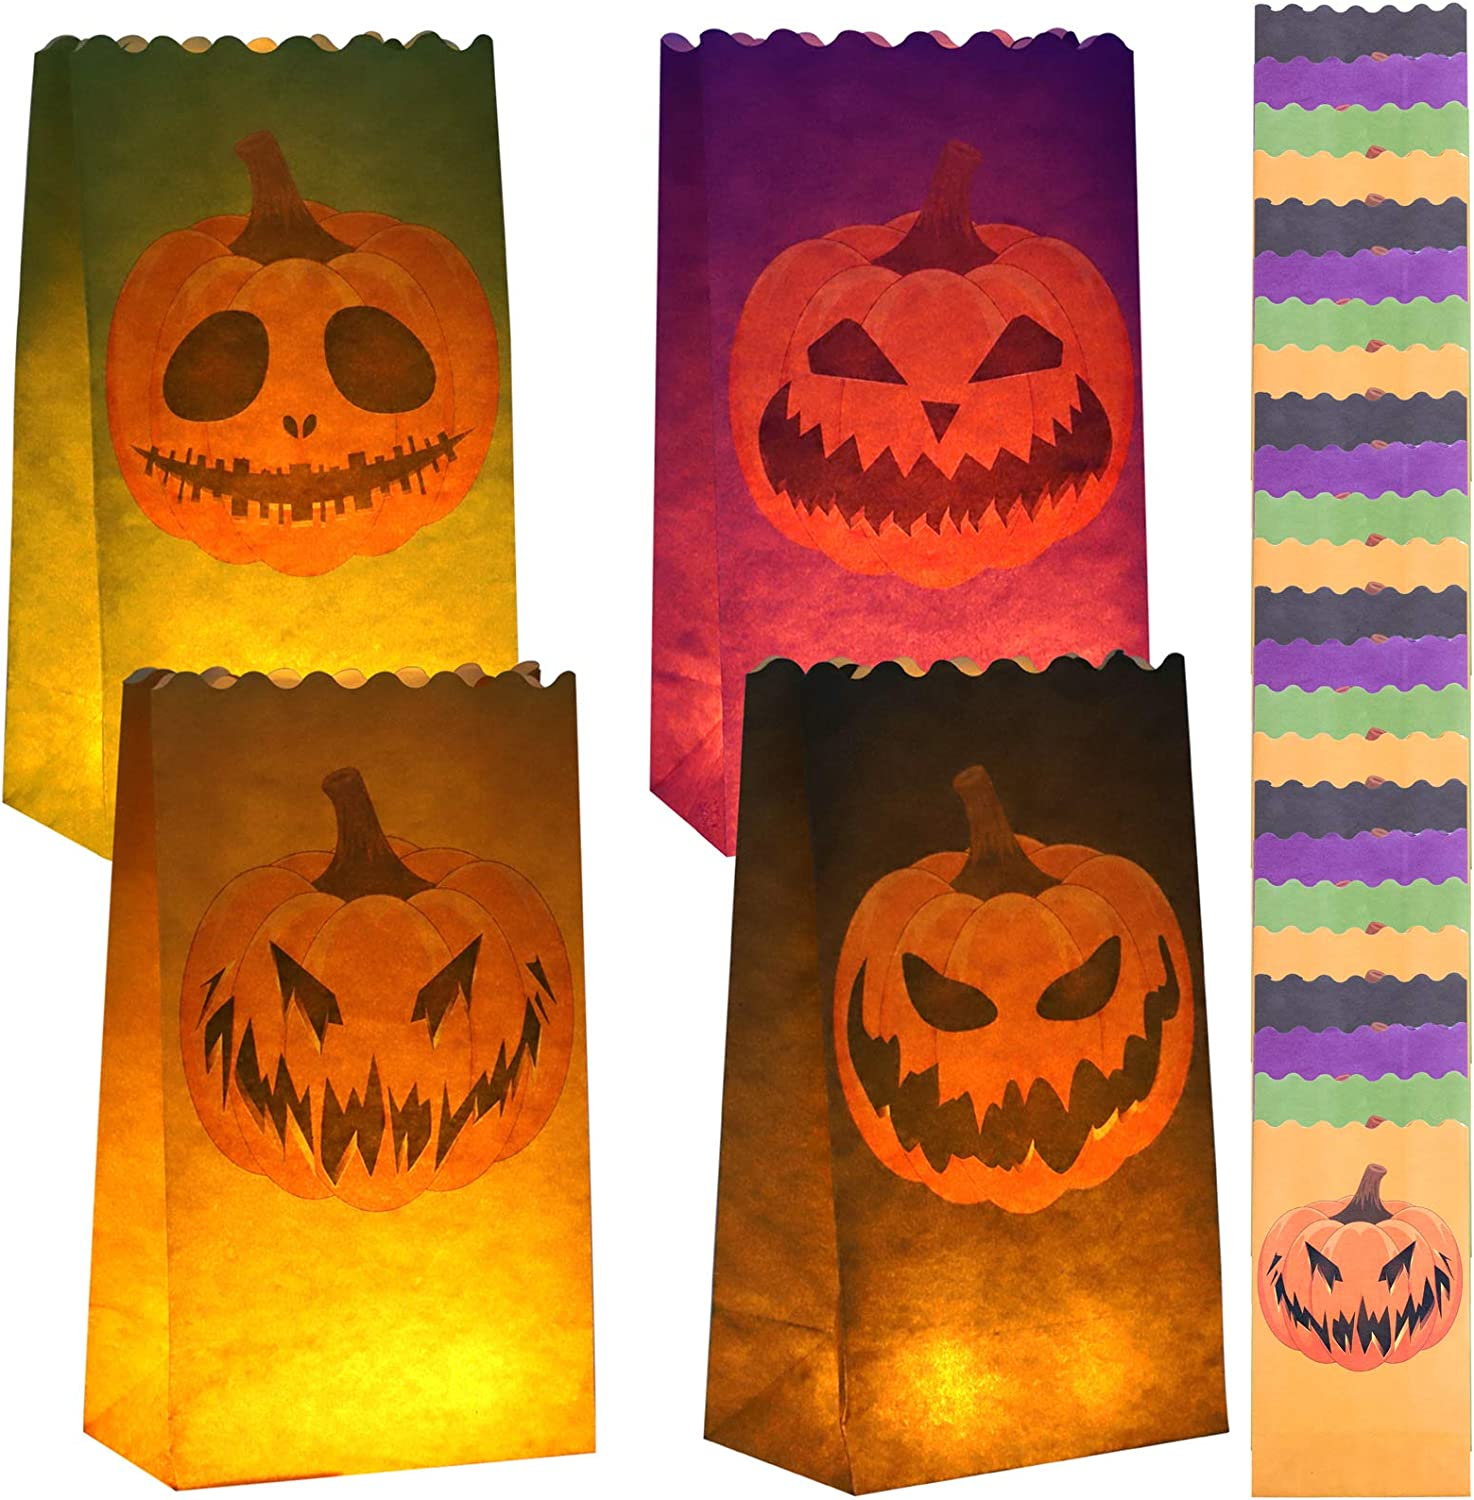 URATOT 24 Pieces Halloween Pumpkin Luminary Bags Jack-o'-Lantern Paper Luminary Bags Paper Lantern Bags Flame Resistant Candle Bags with 4 Pumpkin Silhouettes for Home, Halloween, Party